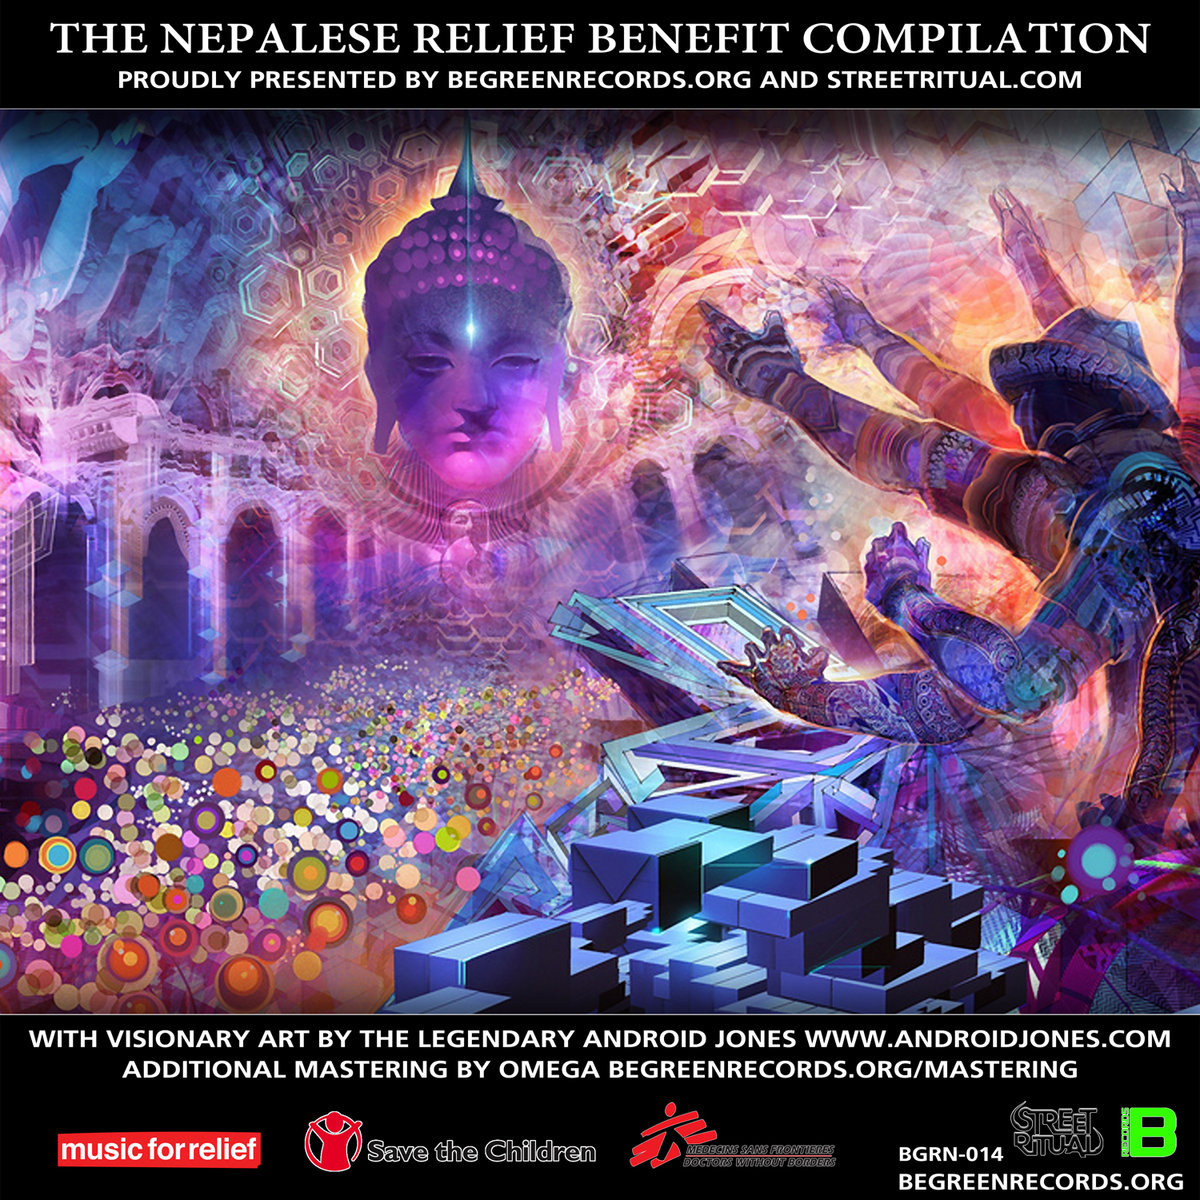 Gydyr - Focus The Energy @ 'Various Artists - The Nepalese Relief Benefit Compilation' album (bass, electronic)